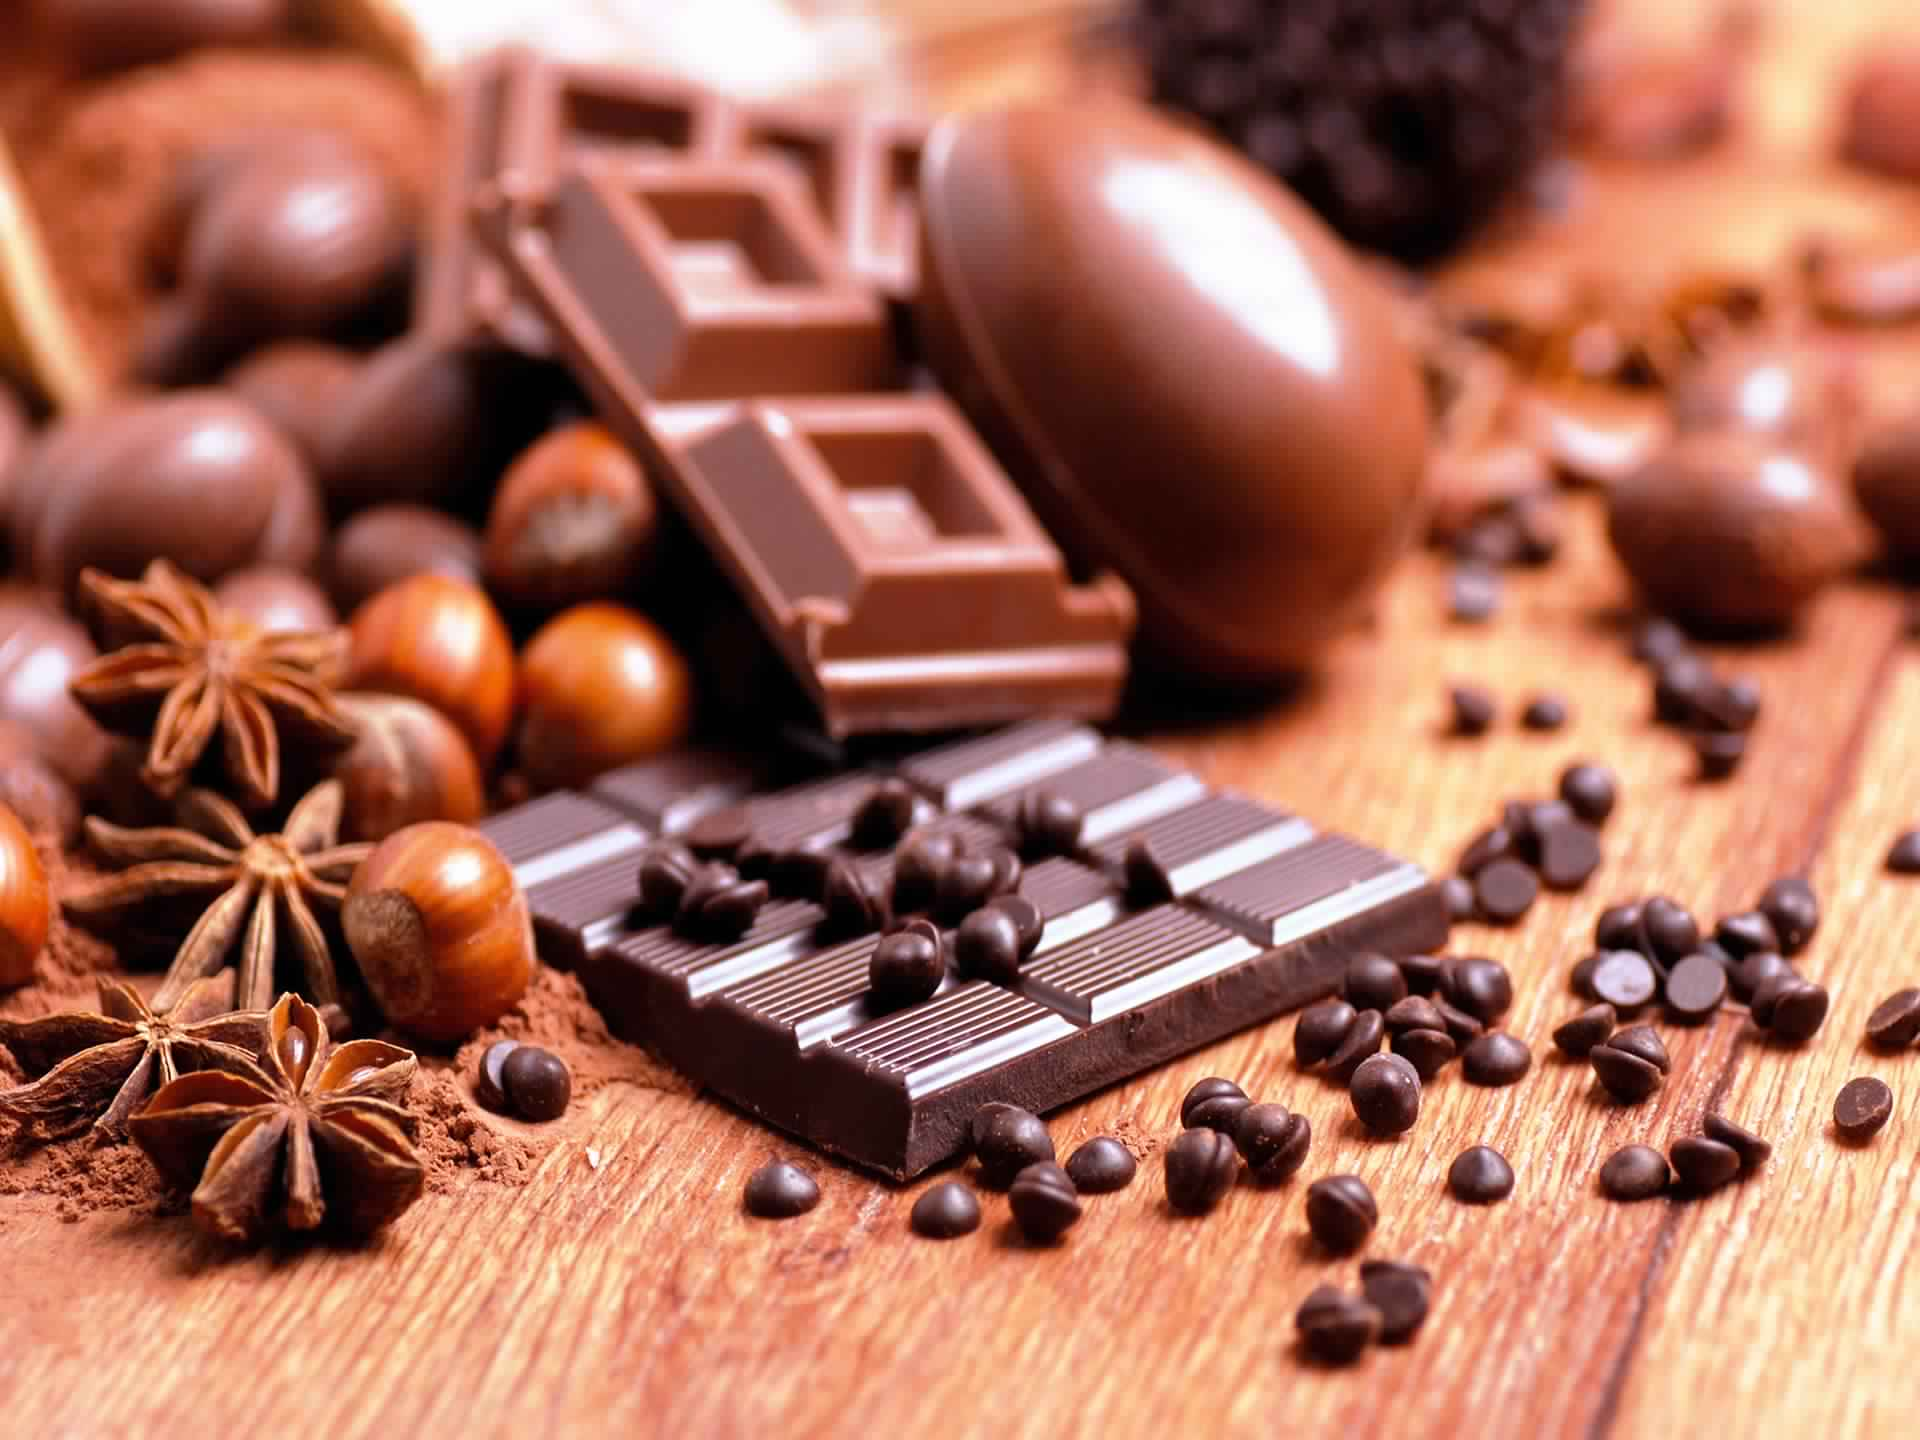 Have that chocolate without any guilt